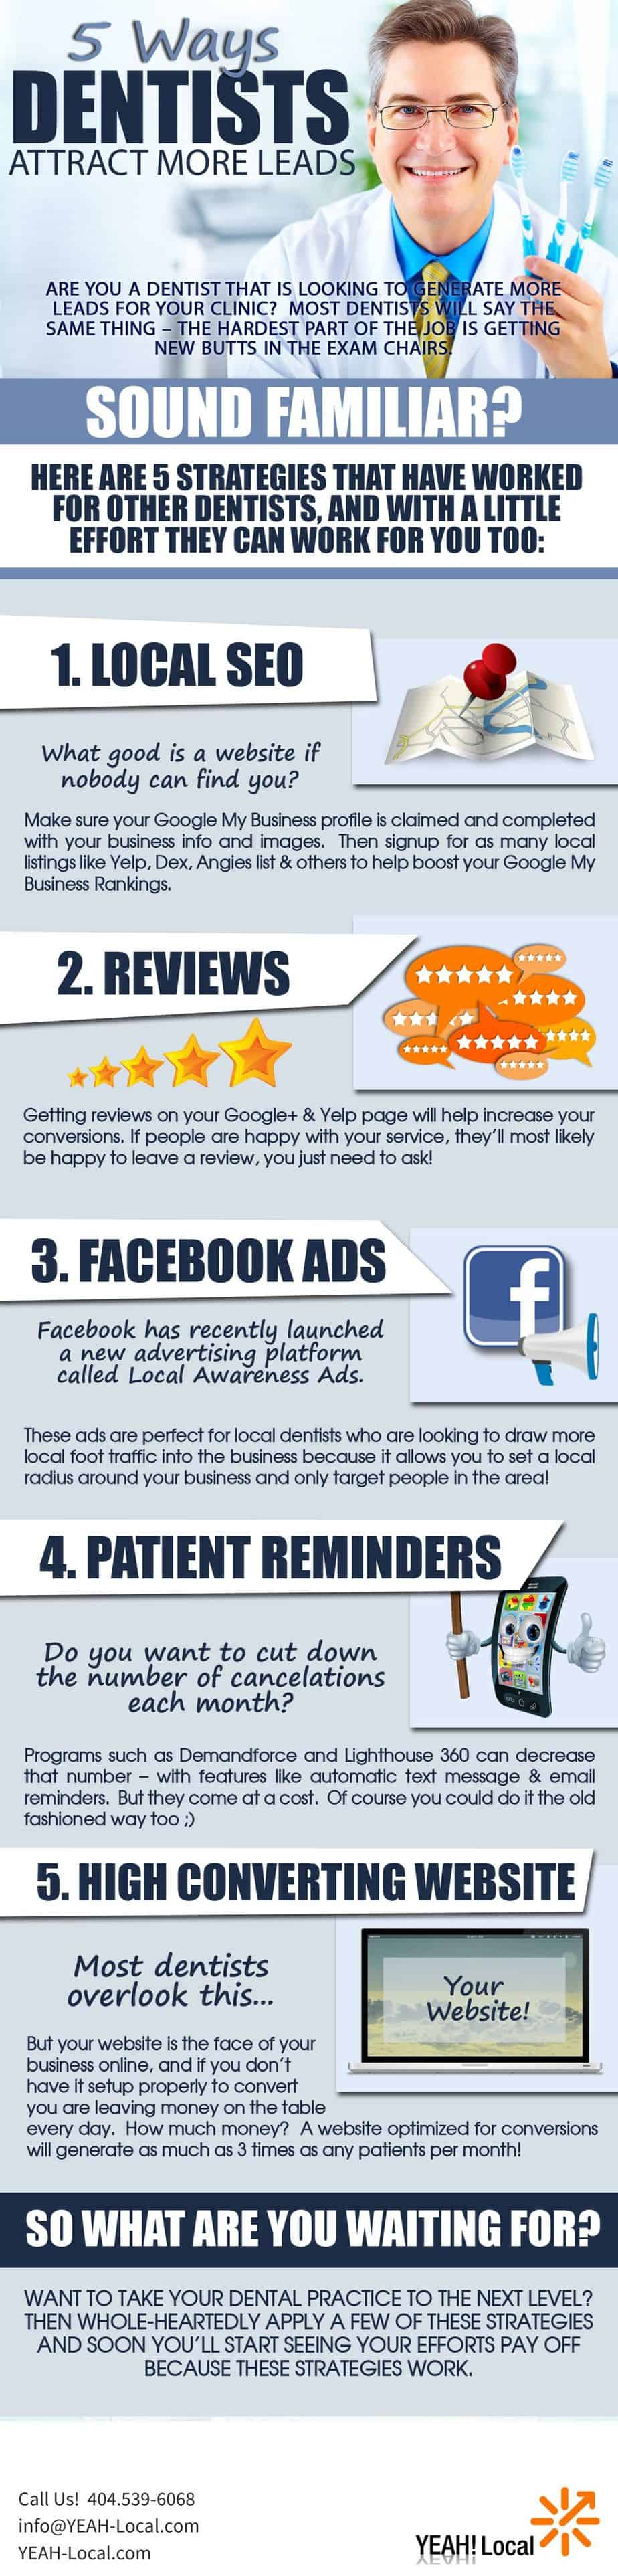 5-Ways-Dentists-Attract-More-Leads